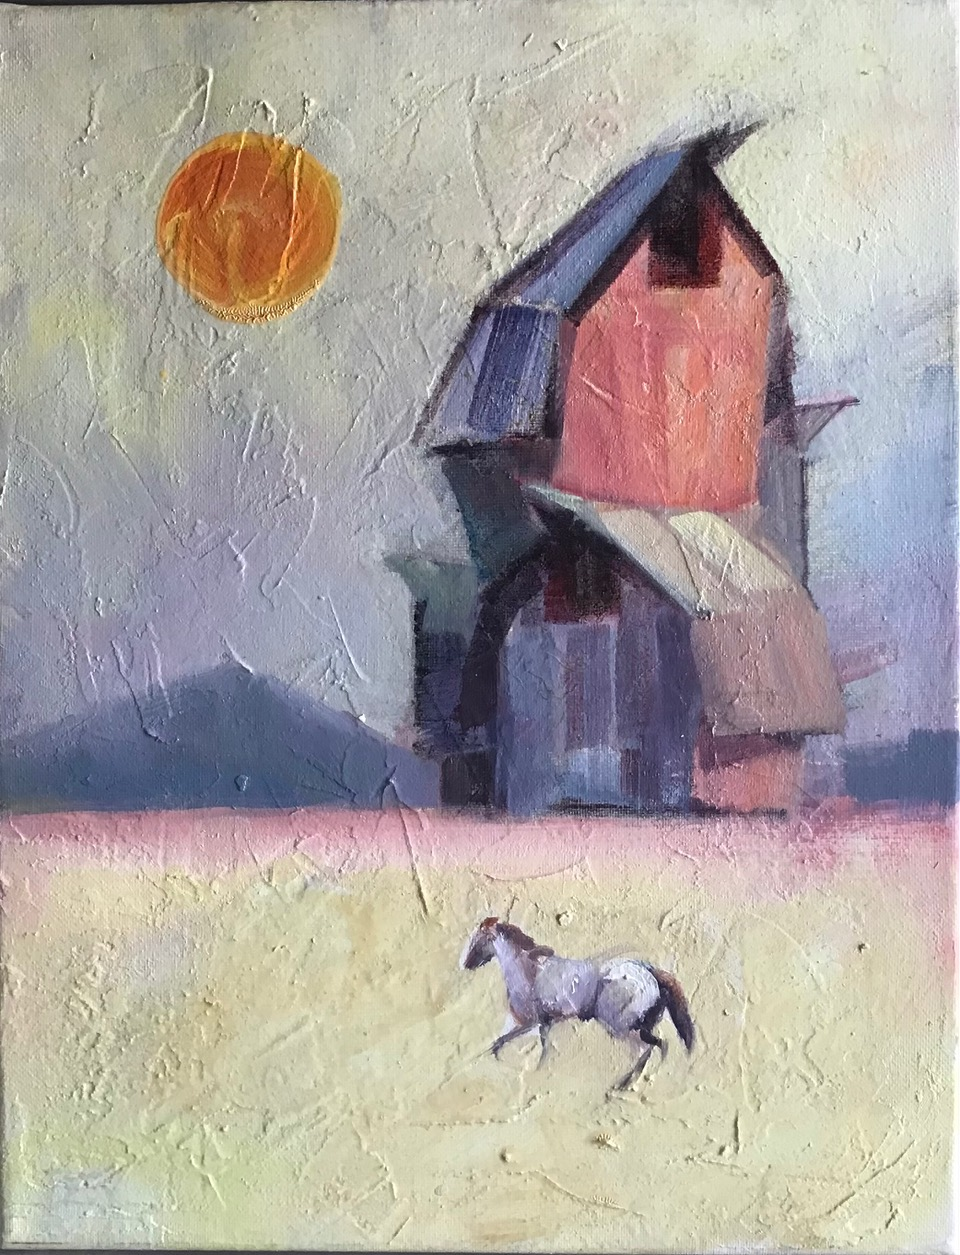 The Horse, painting by Desmond Serratore